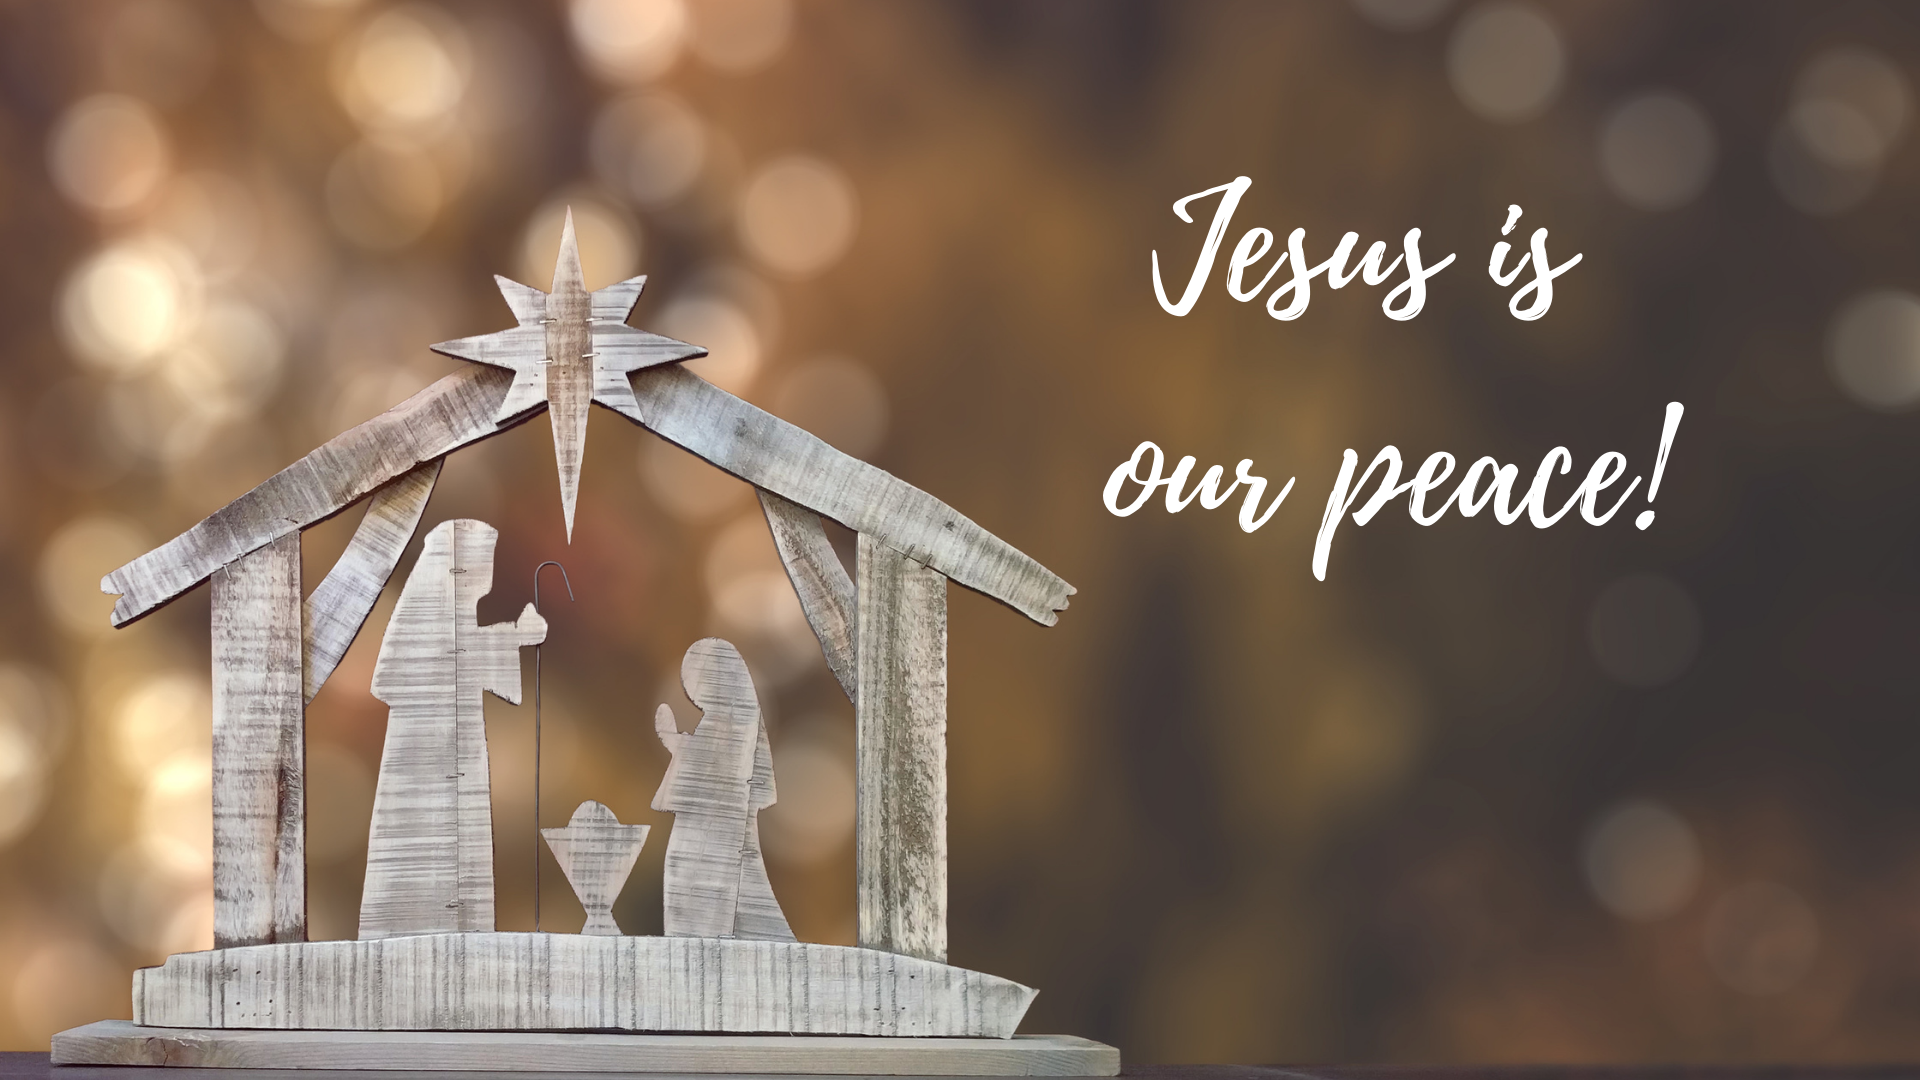 Jesus is Our Peace!